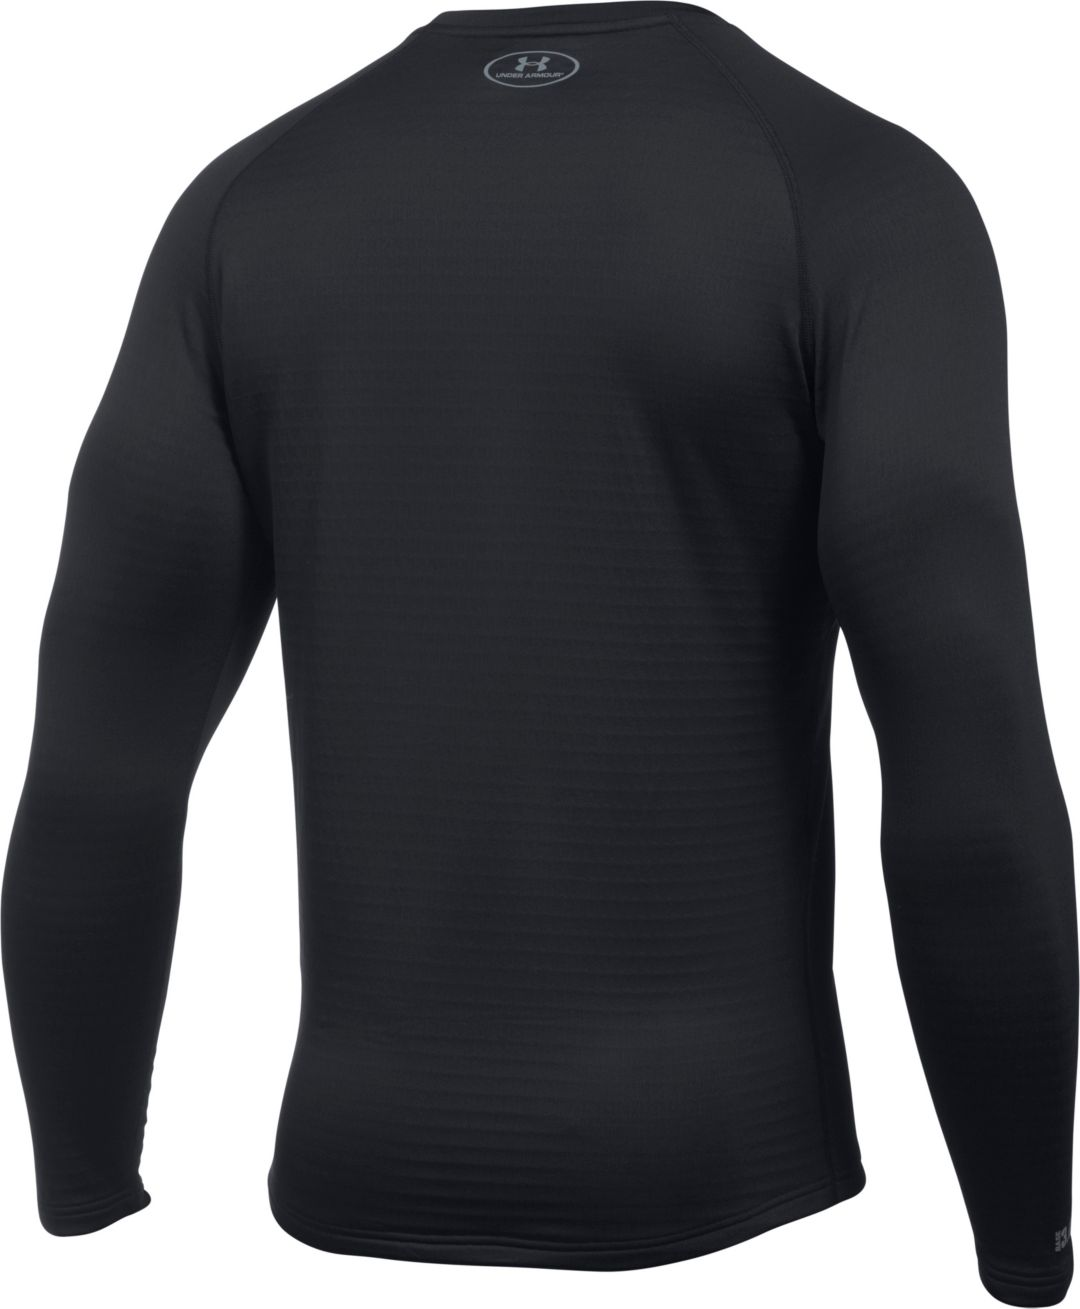 2999cc47 Under Armour Men's Base 3.0 Crew Long Sleeve Shirt | DICK'S Sporting ...